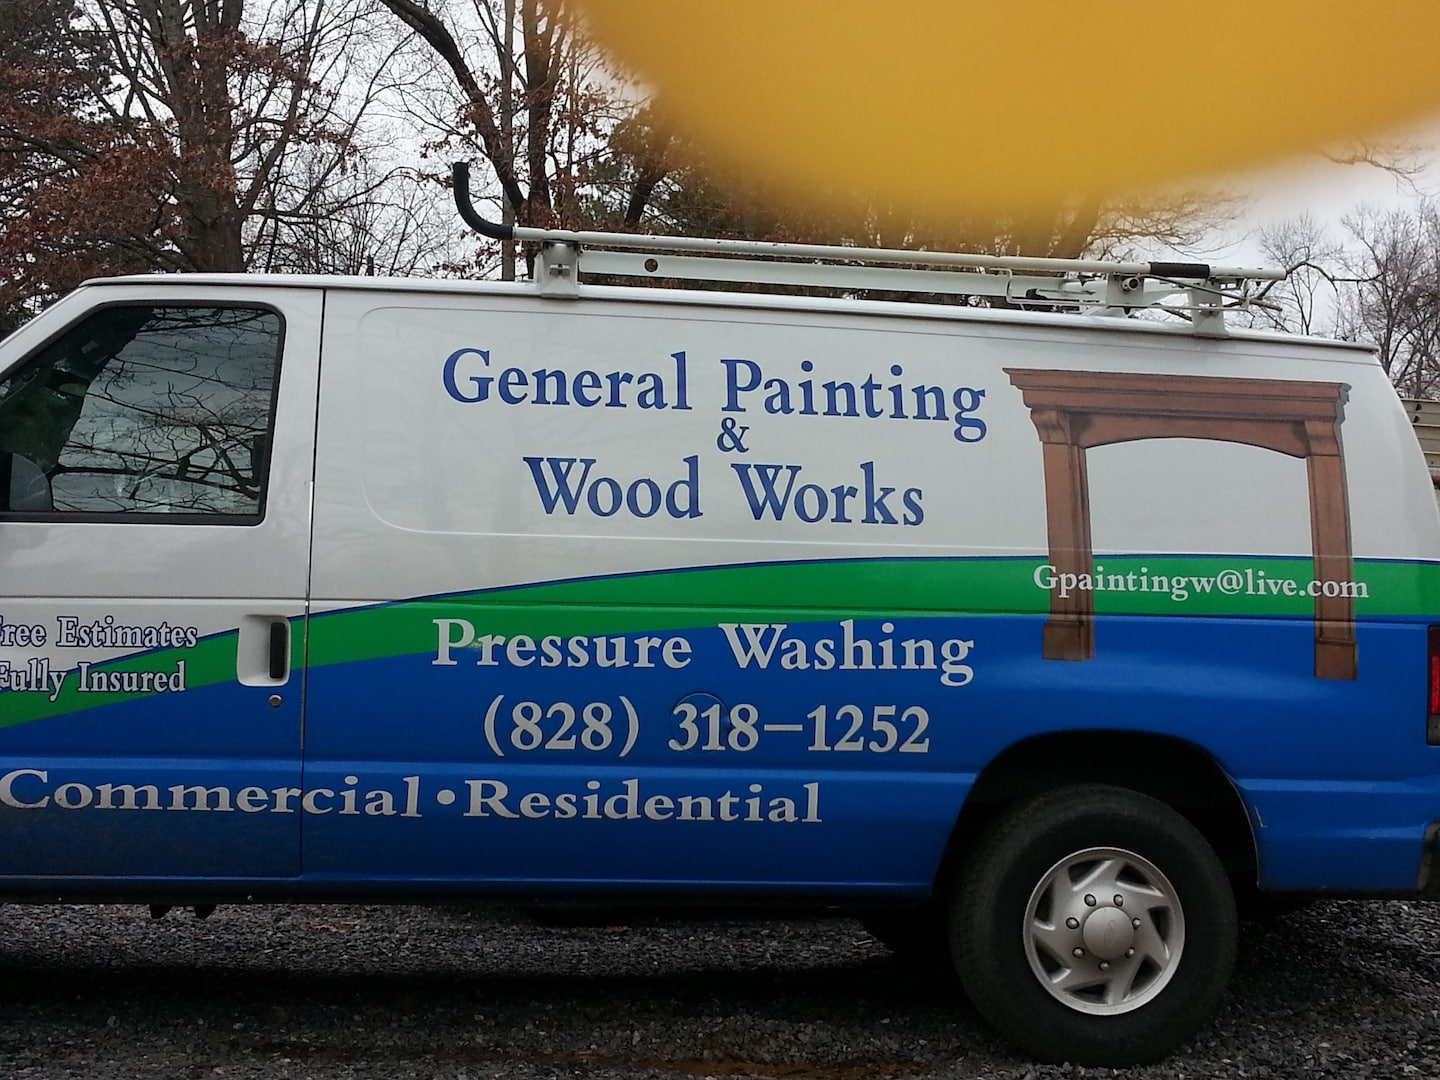 General Painting and Wood Works